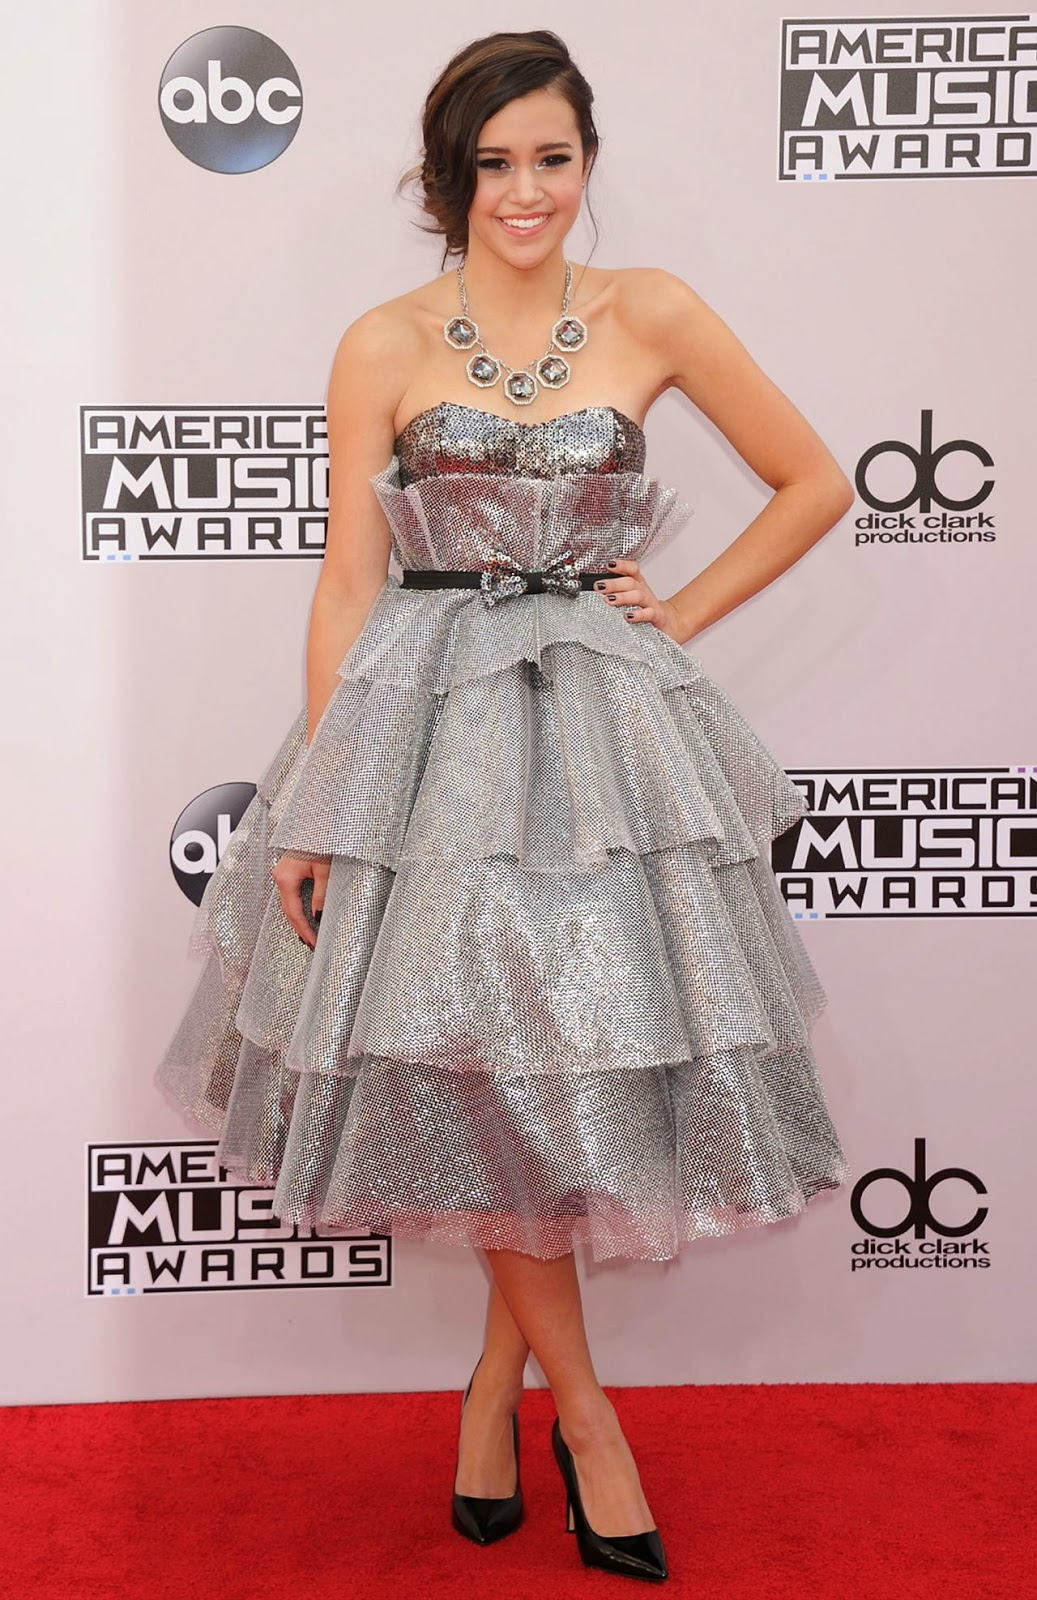 Megan Nicole - 2014 American Music Awards - Red Carpet